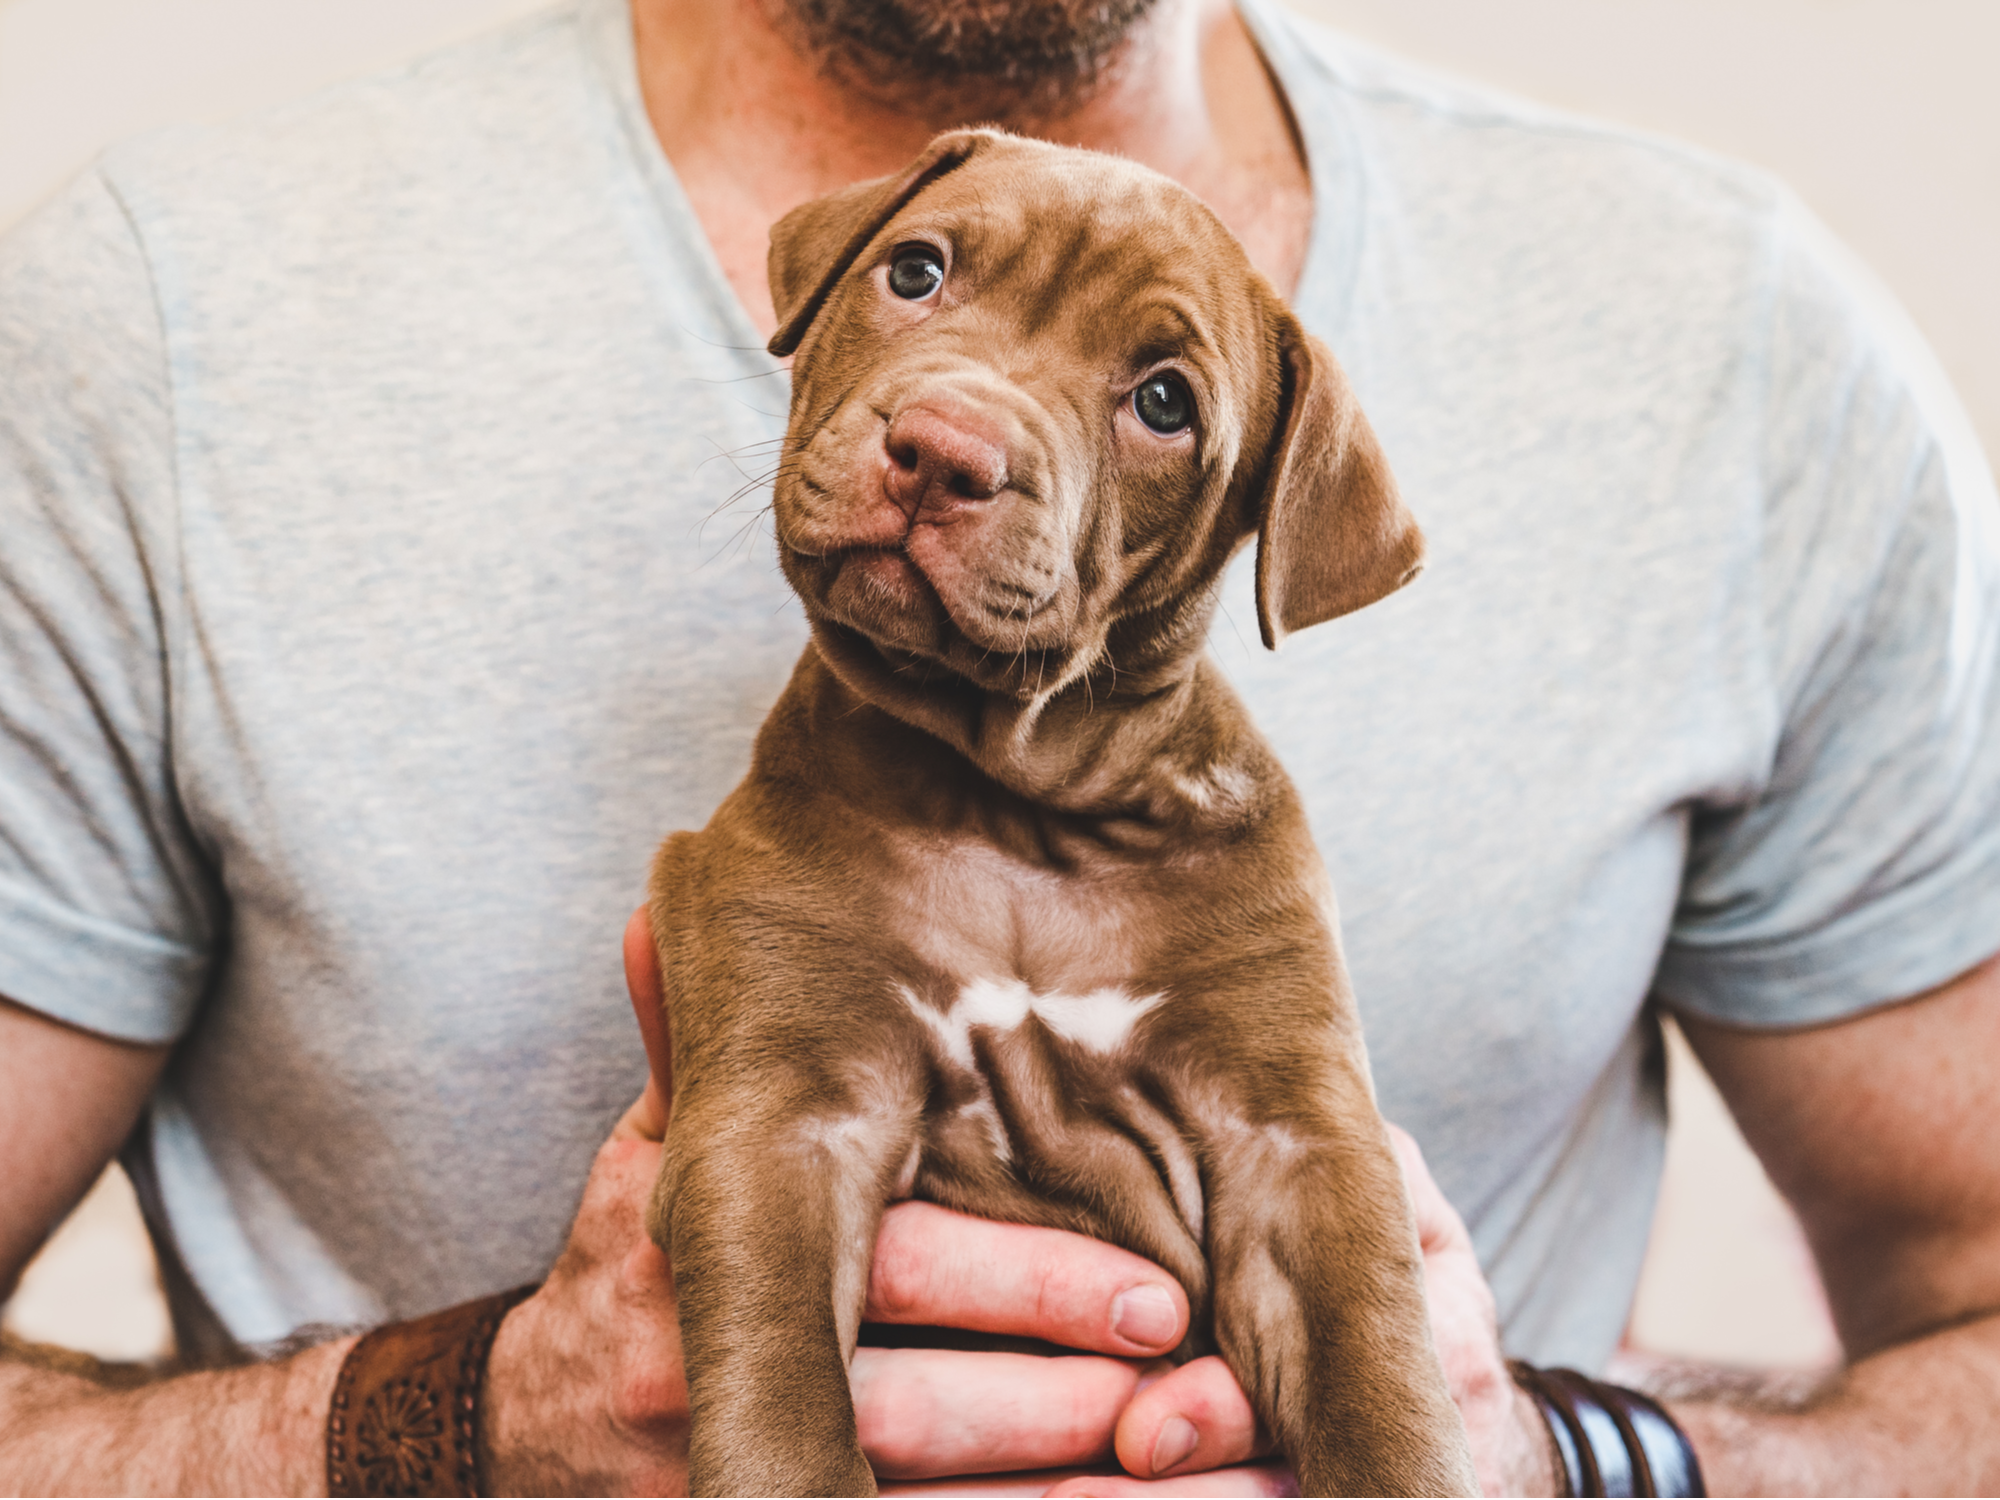 Bringing Home a New Puppy: How to Prepare